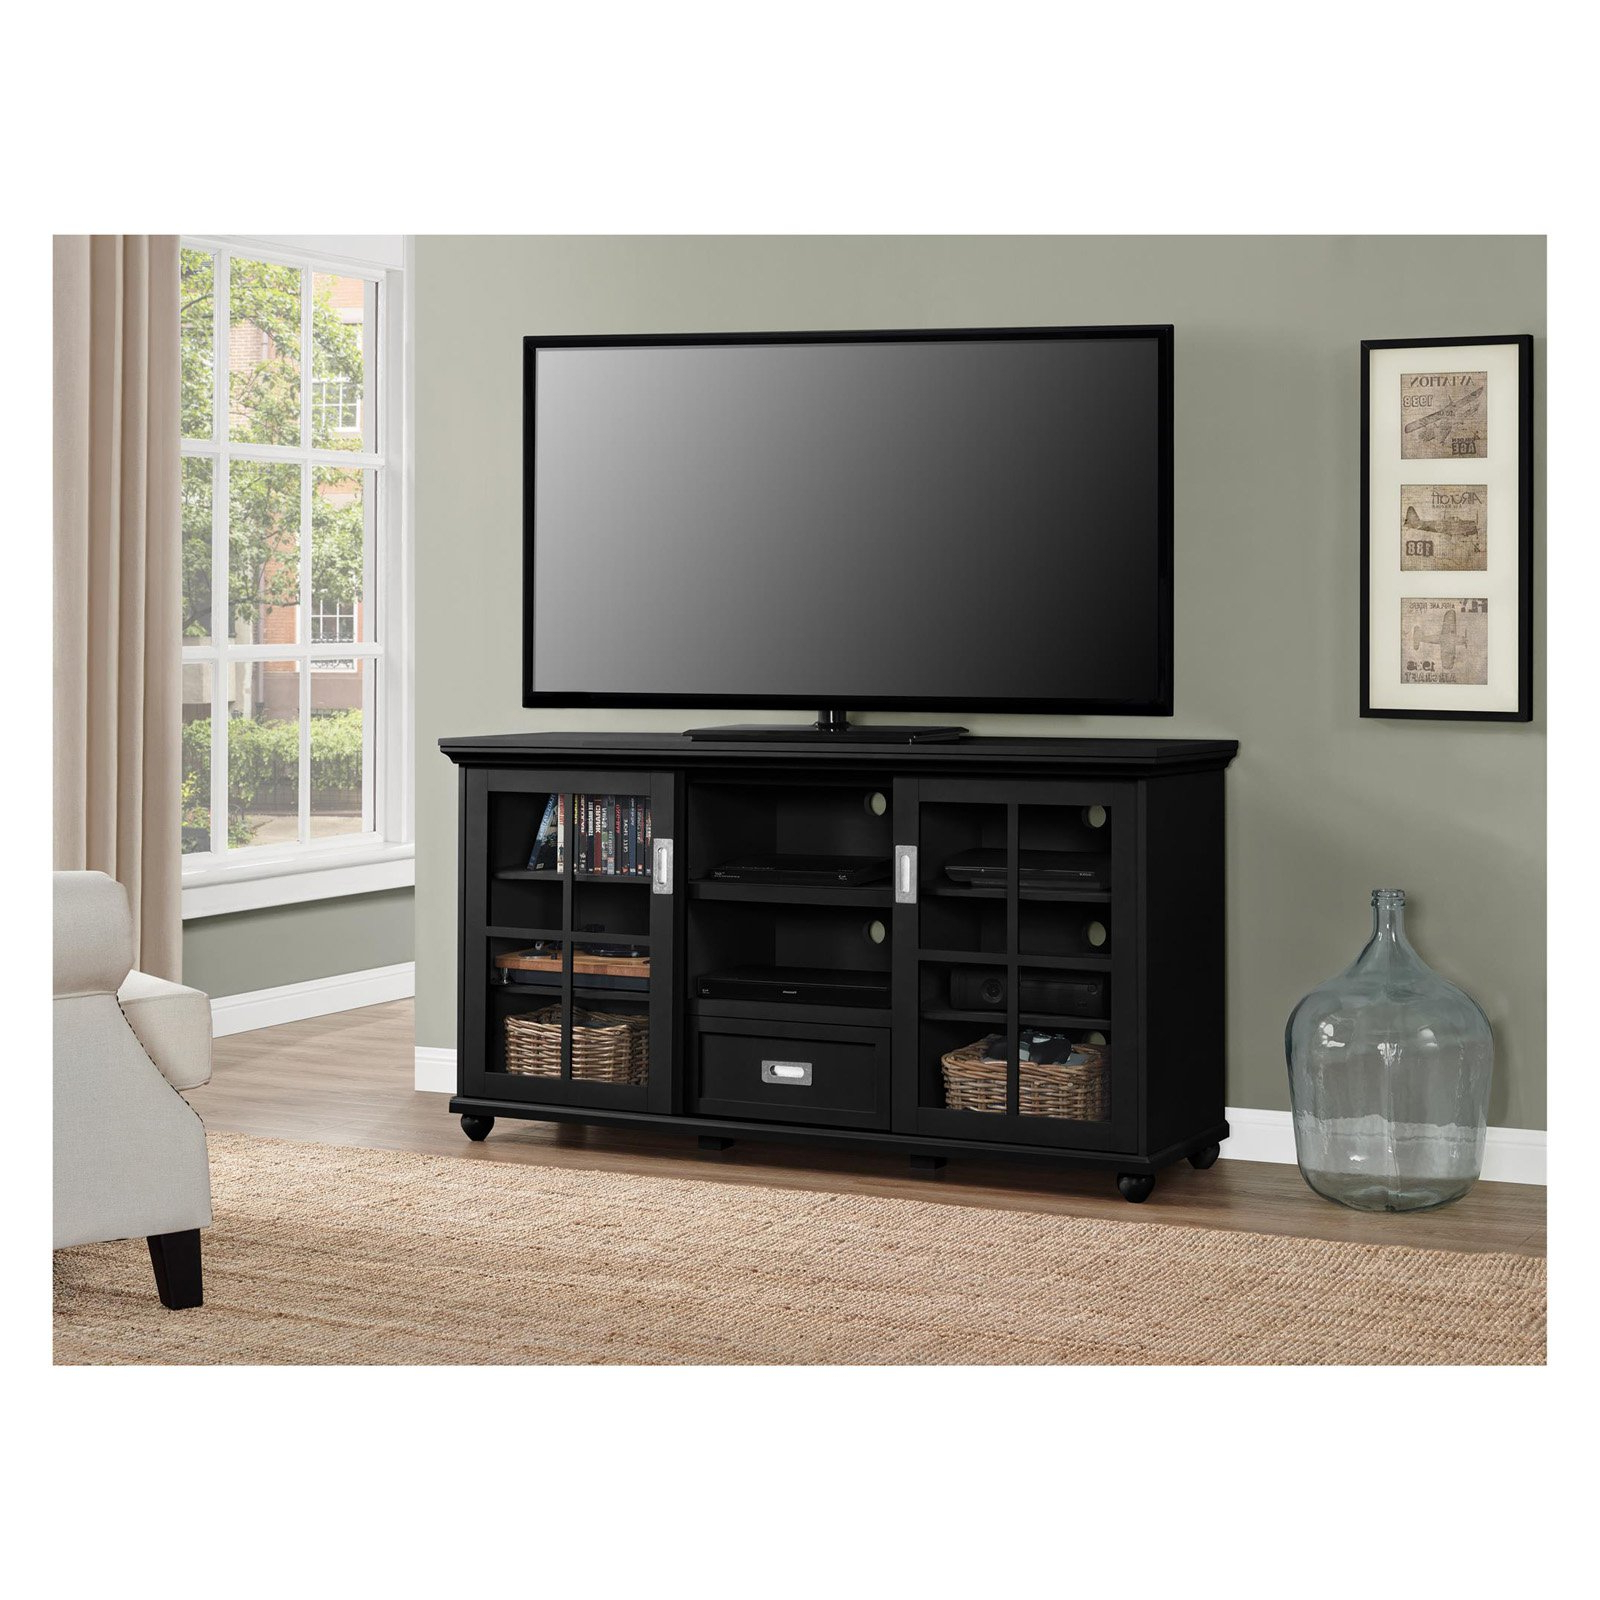 "Most Recent Tv Stands For 55 Inch Tv Within Ameriwood Home Aaron Lane 55"" Tv Stand, Gray – Walmart (View 8 of 20)"